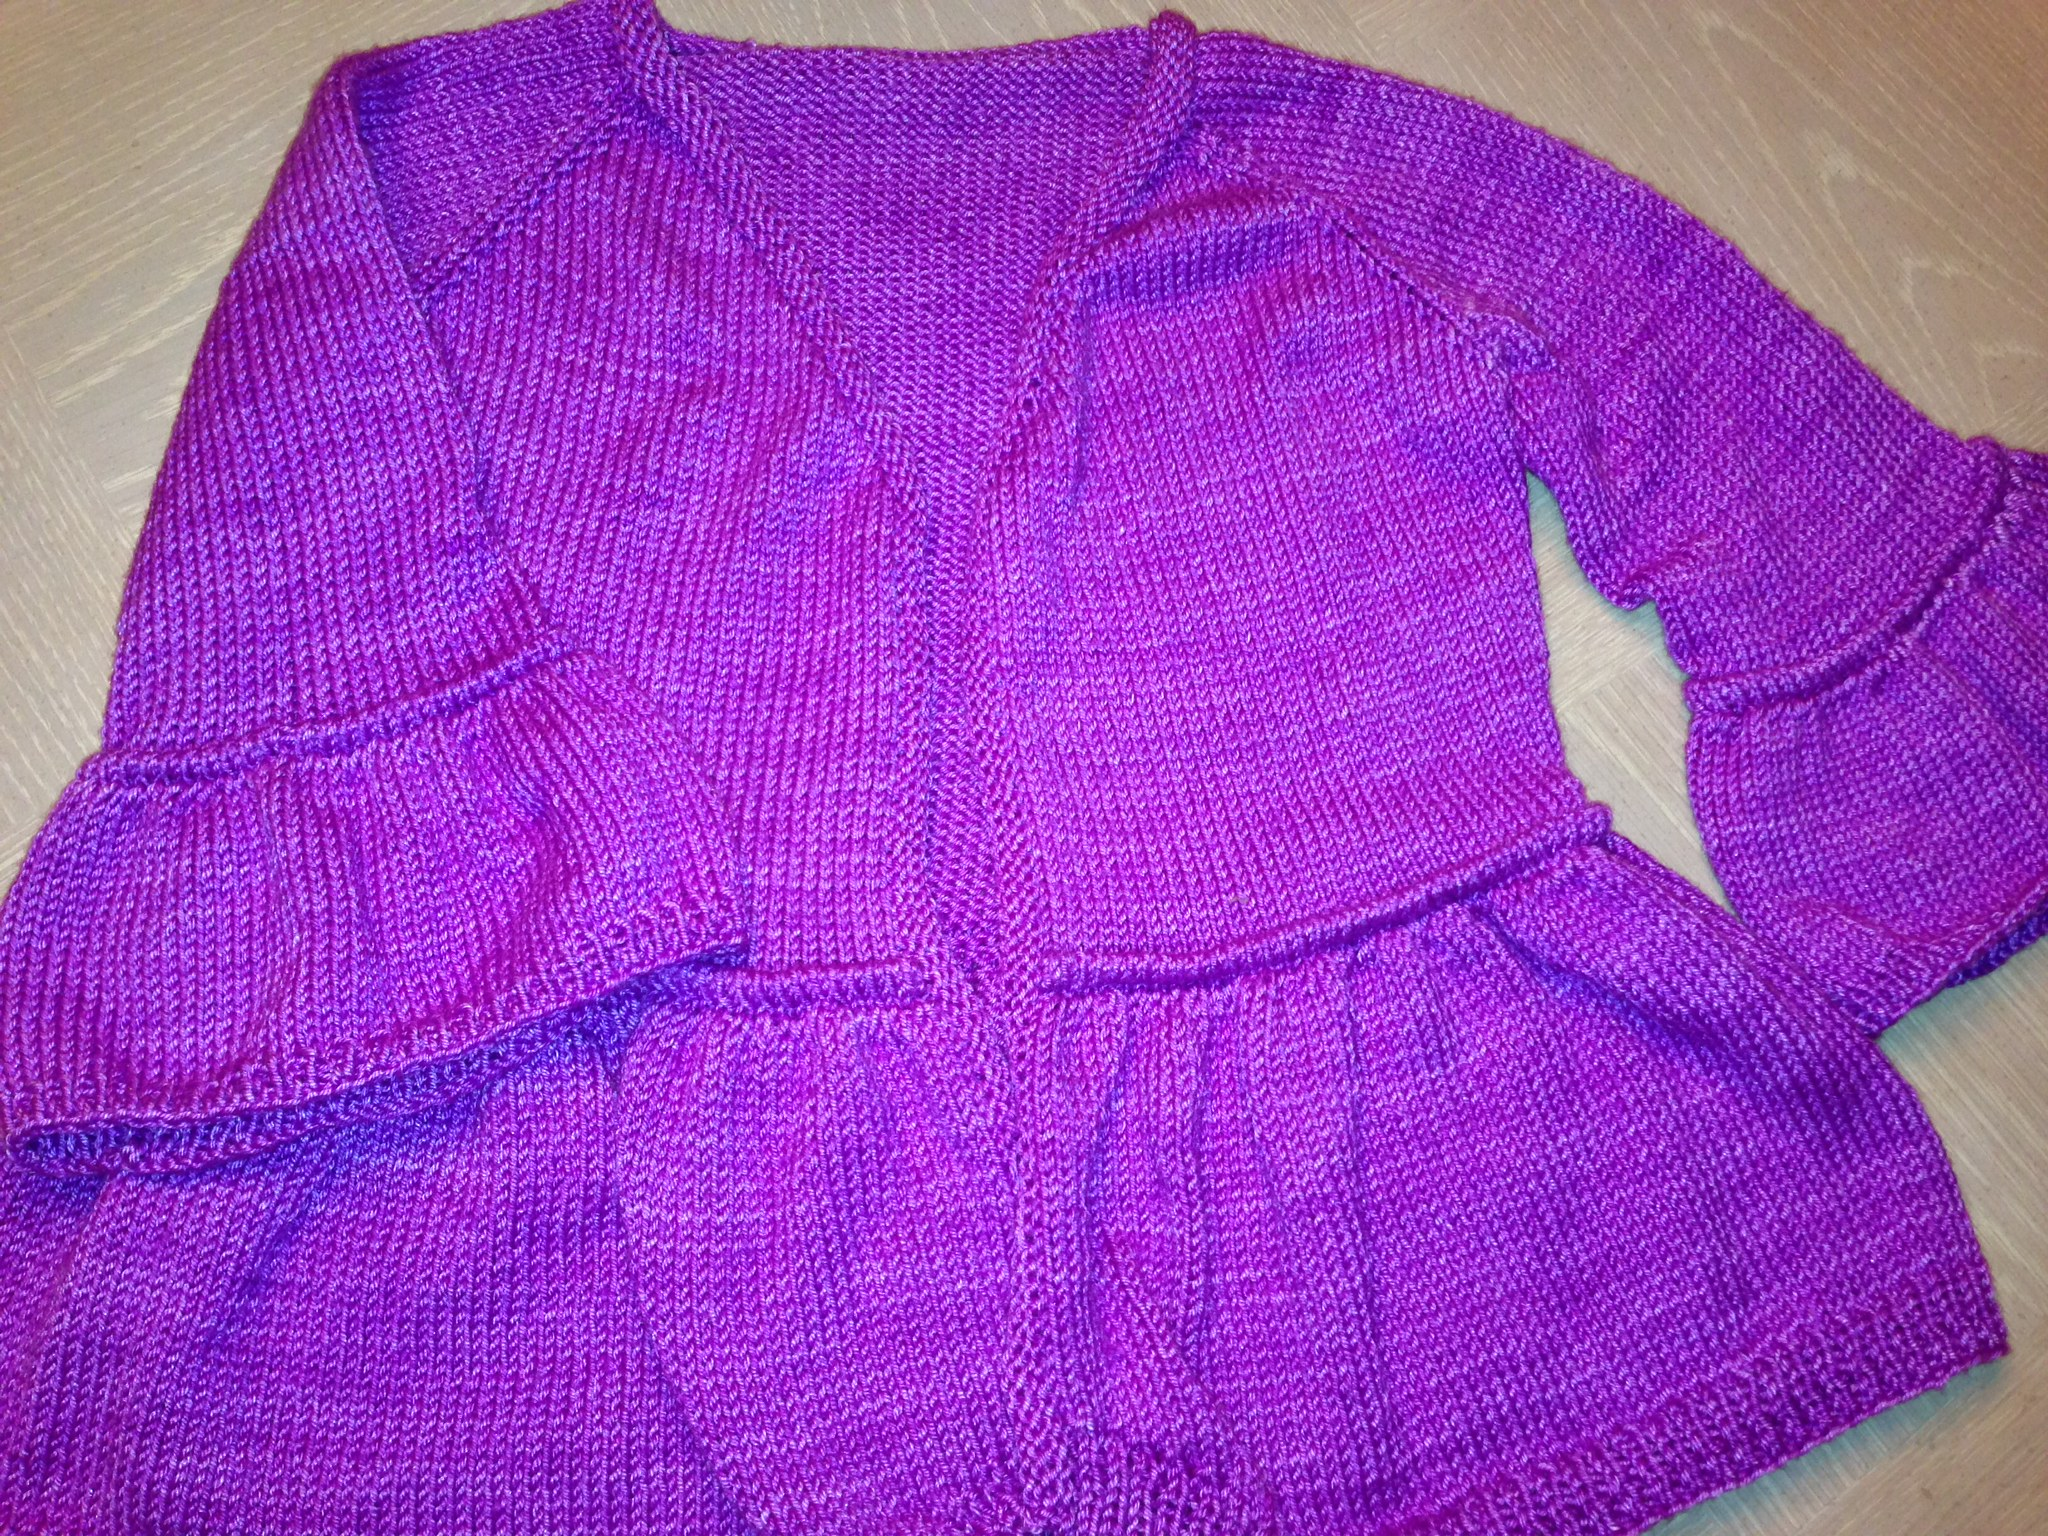 Here is one of the sweaters I knitted while away from the studio. The next project is a pair of socks! The yarn and pattern for this sweater are from  The Knot House  in Frederick,Maryland. I did change the sleeves of this pattern a little bit to mimic the flounce at the bottom of the sweater!